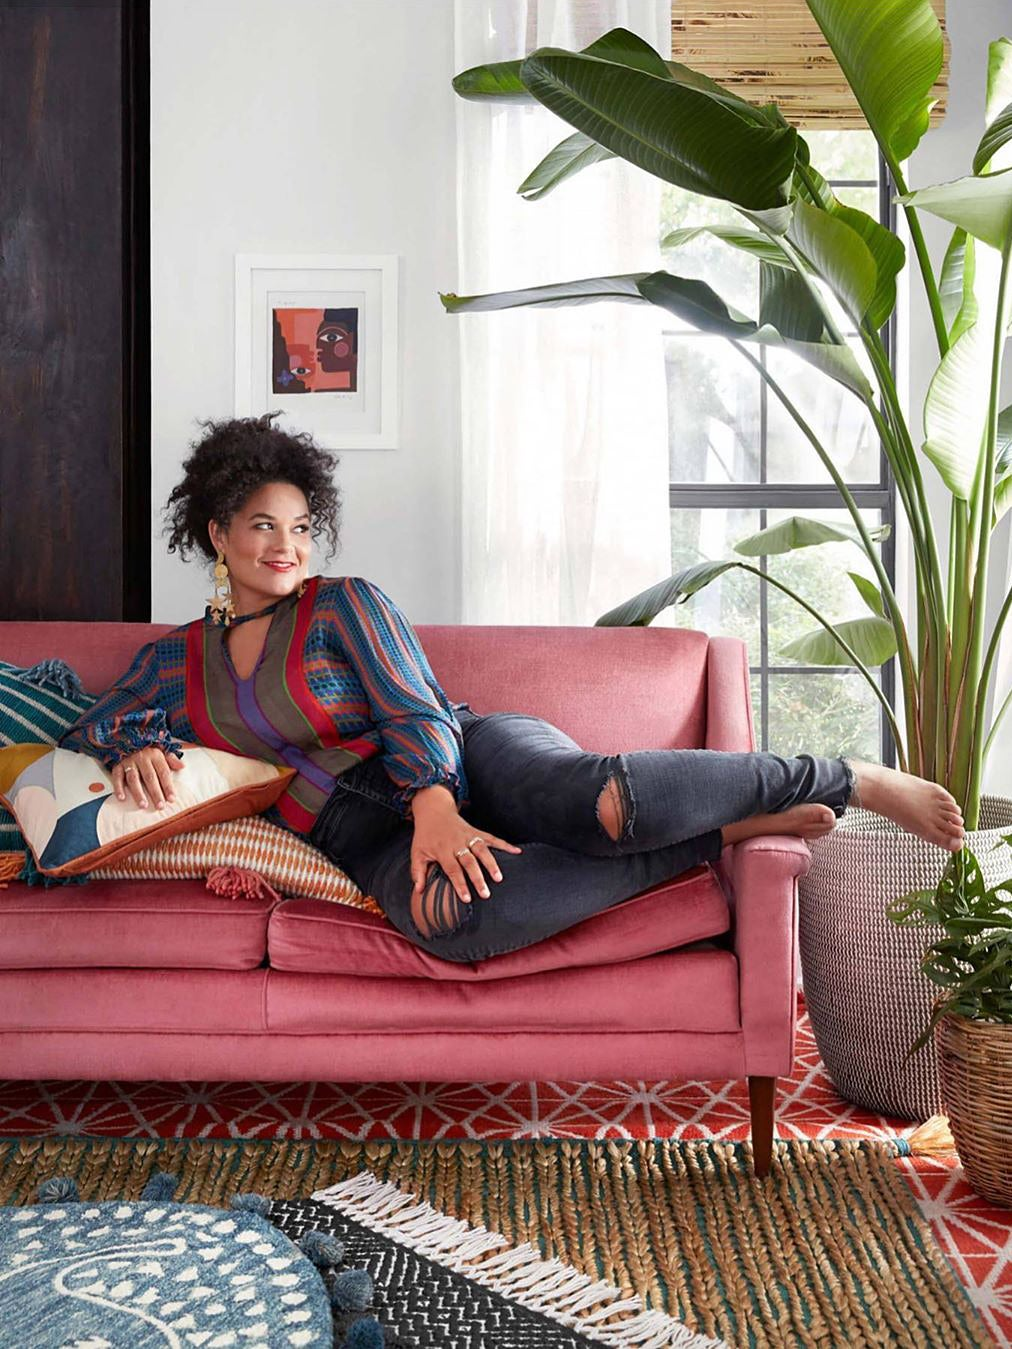 Justina Blakeney sitting on pink couch